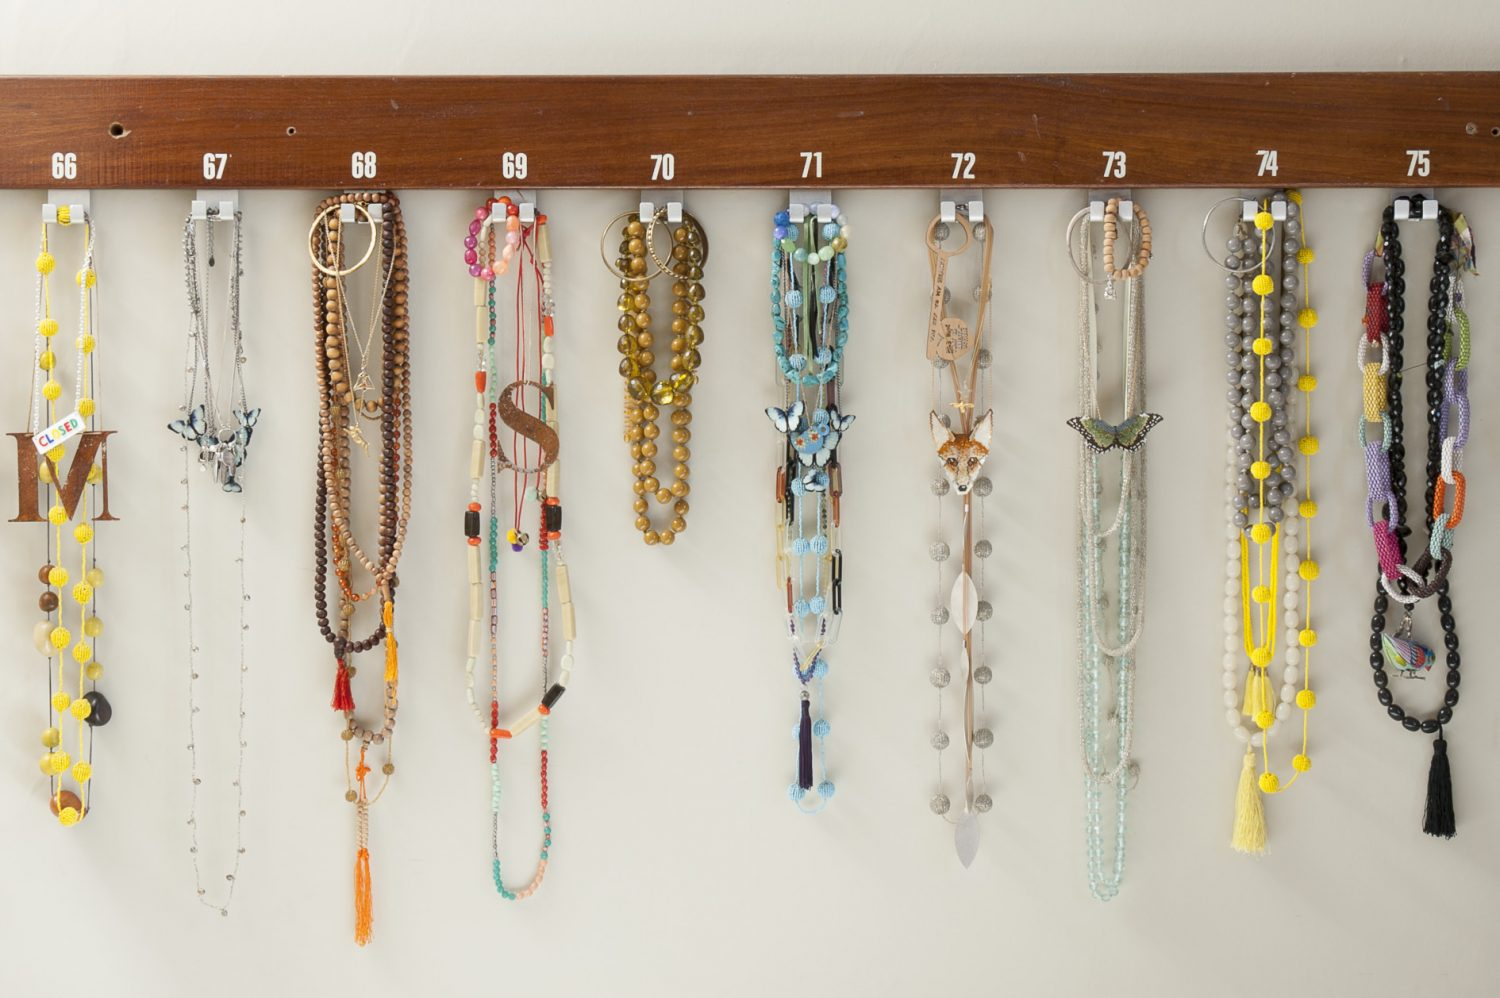 Sarah's collection of necklaces hangs from a row of salvaged school coat hooks